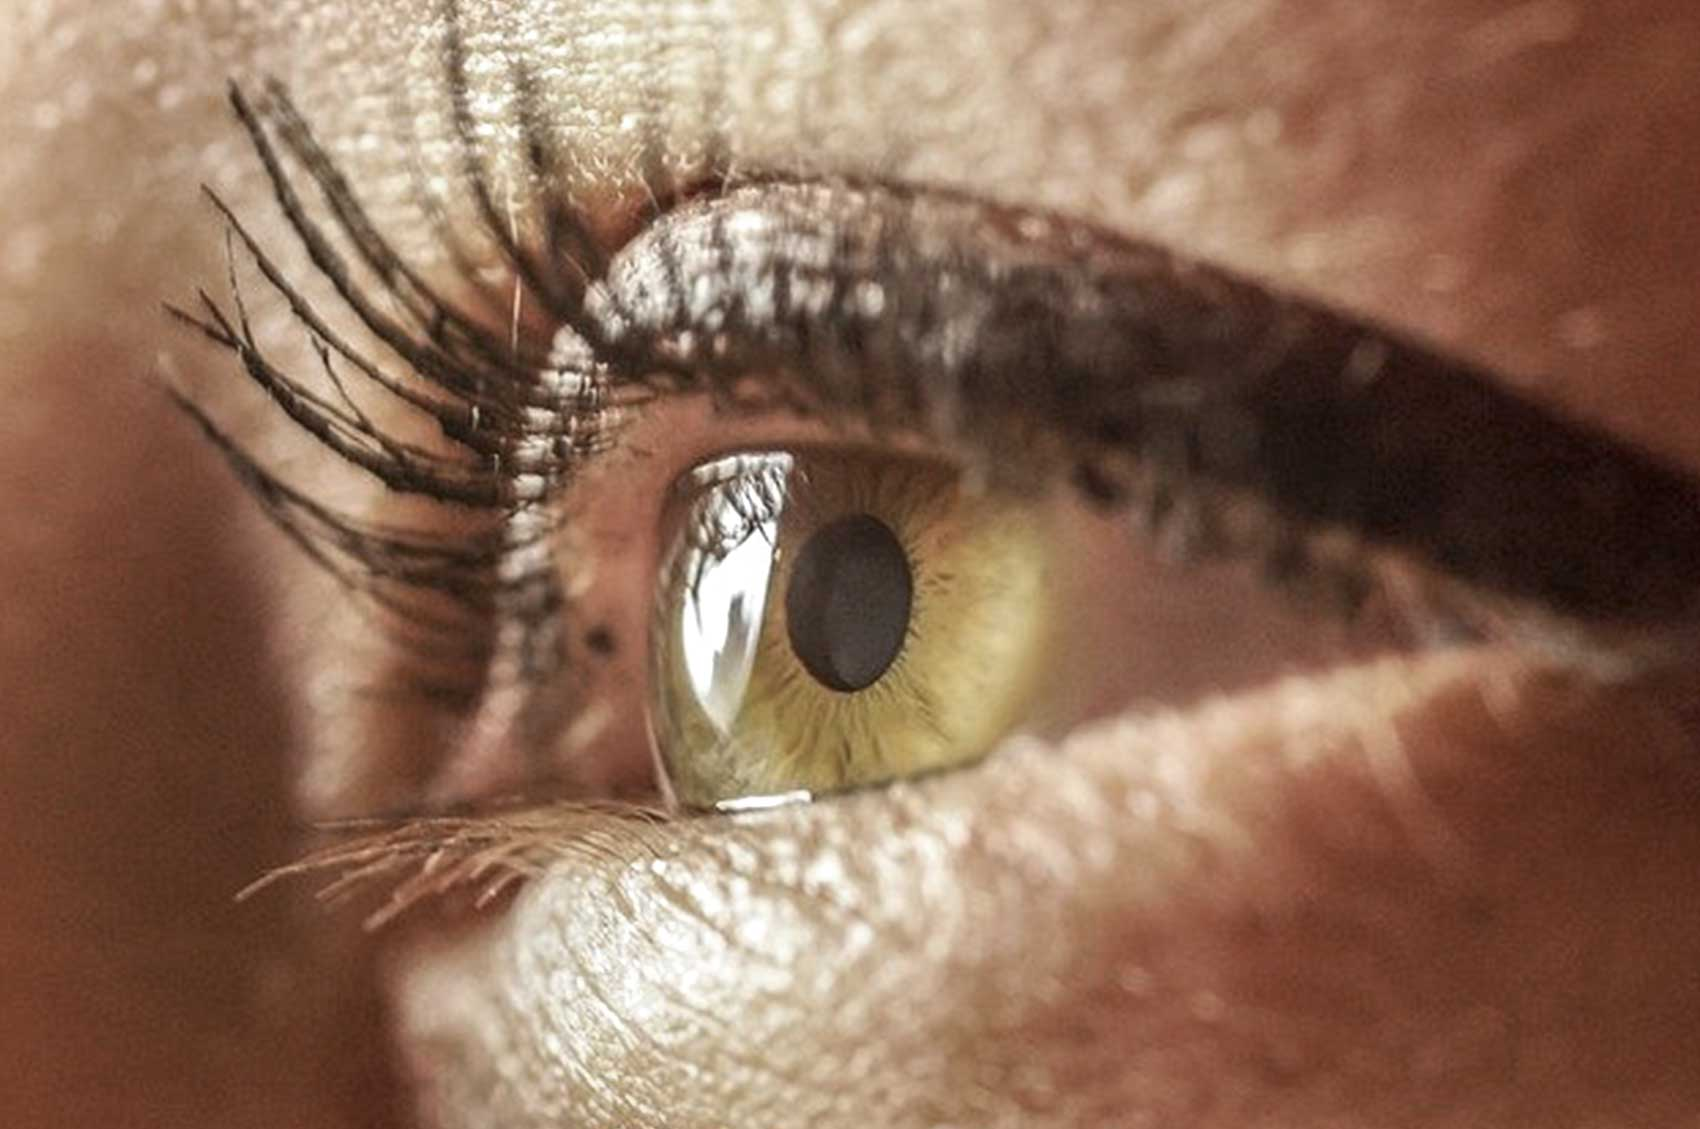 Vision Impairment & Daily Living